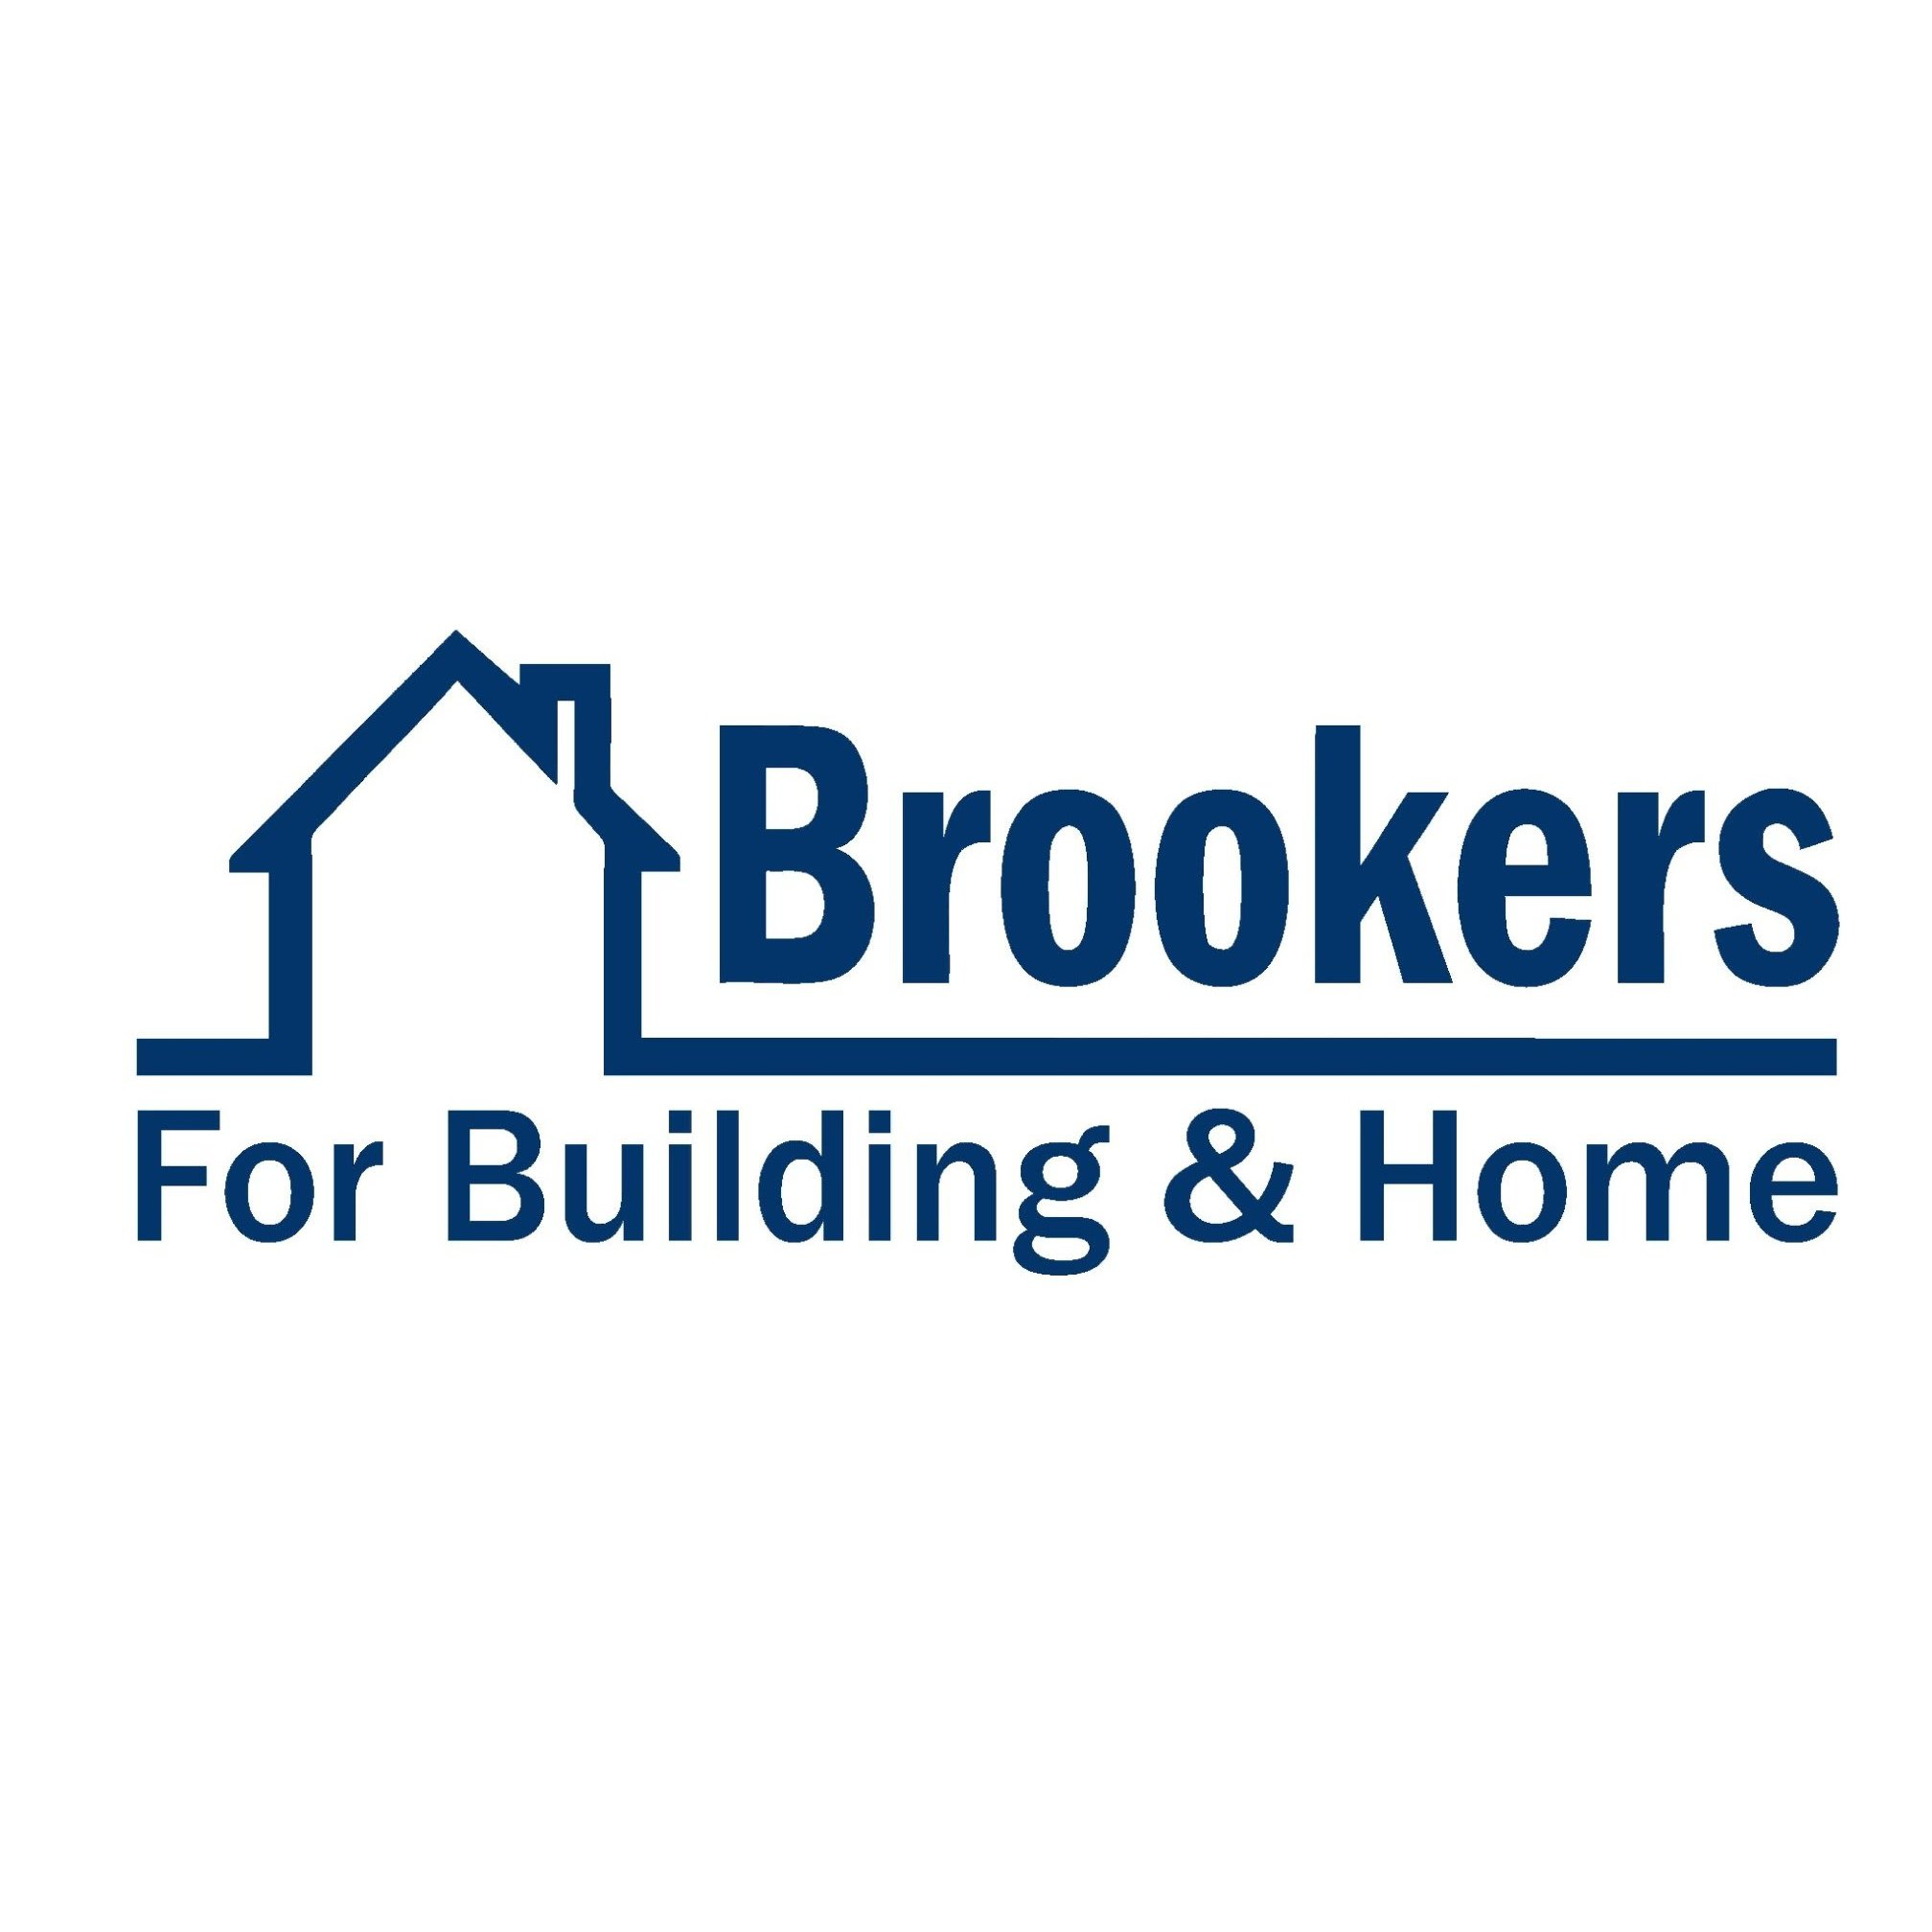 Brookers - Hitchin, Hertfordshire SG4 0SB - 01462 419830 | ShowMeLocal.com